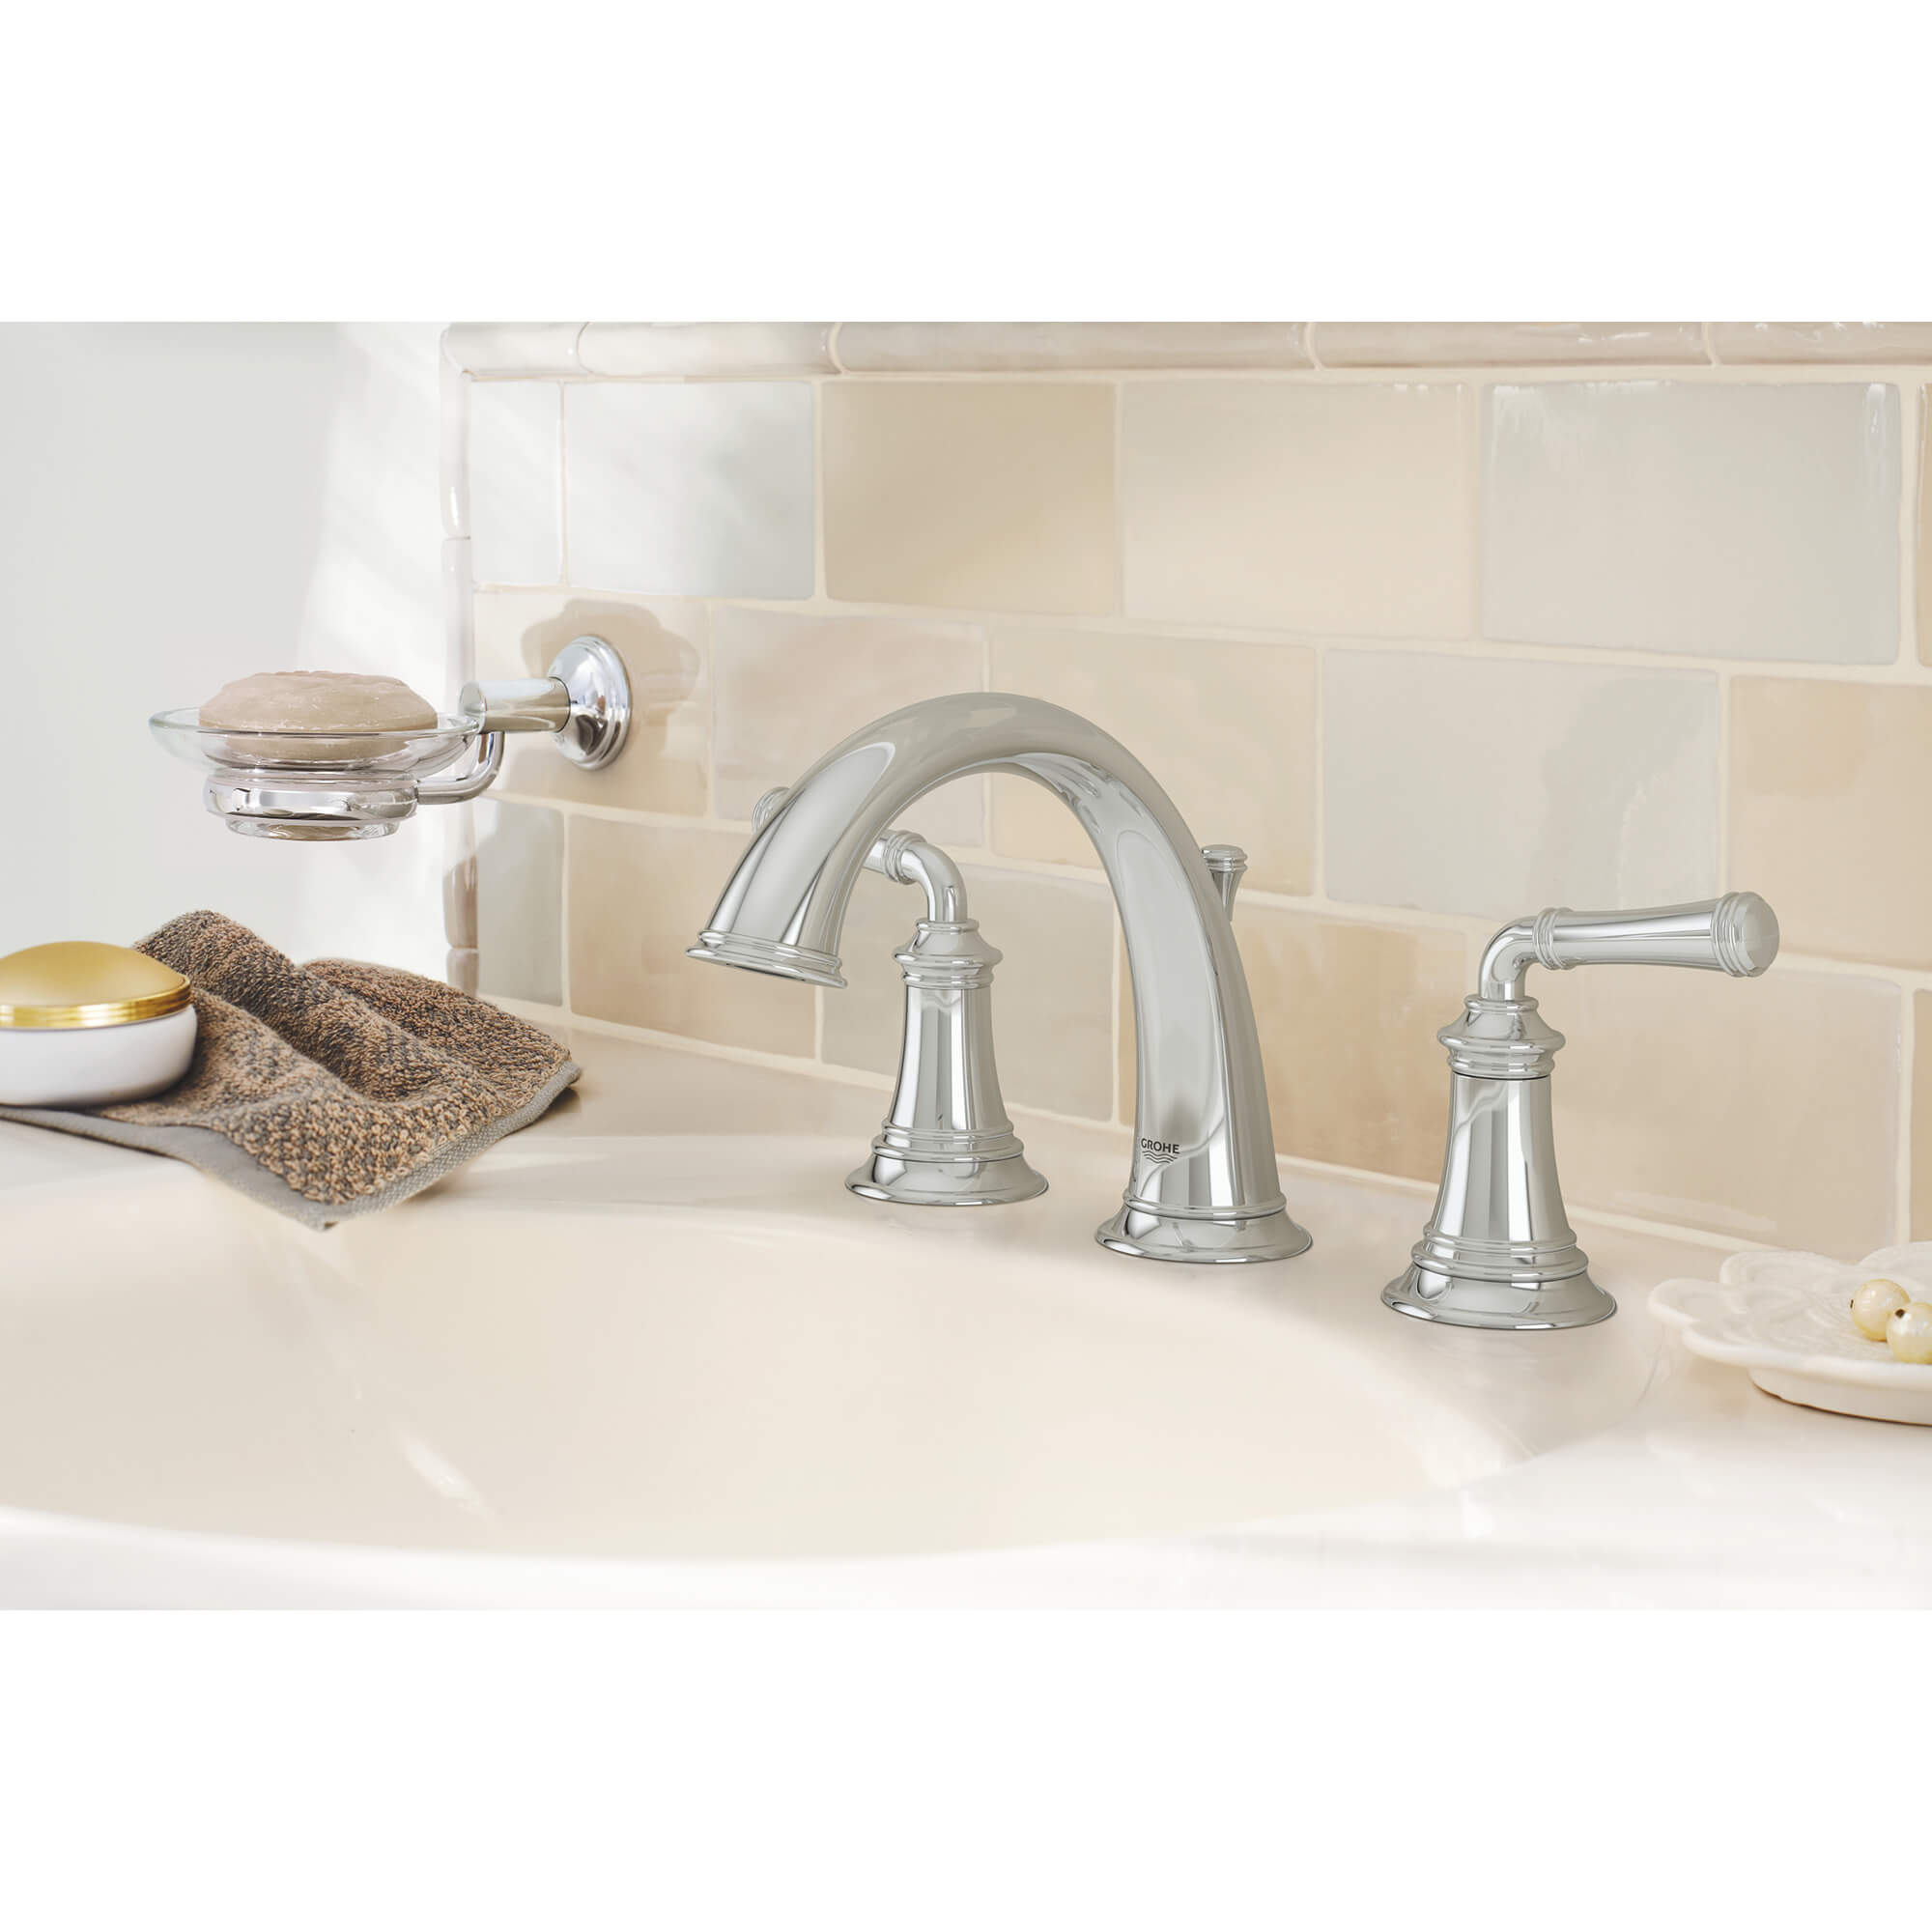 Gloucester 8 Inch Wideset Lavatory Faucet